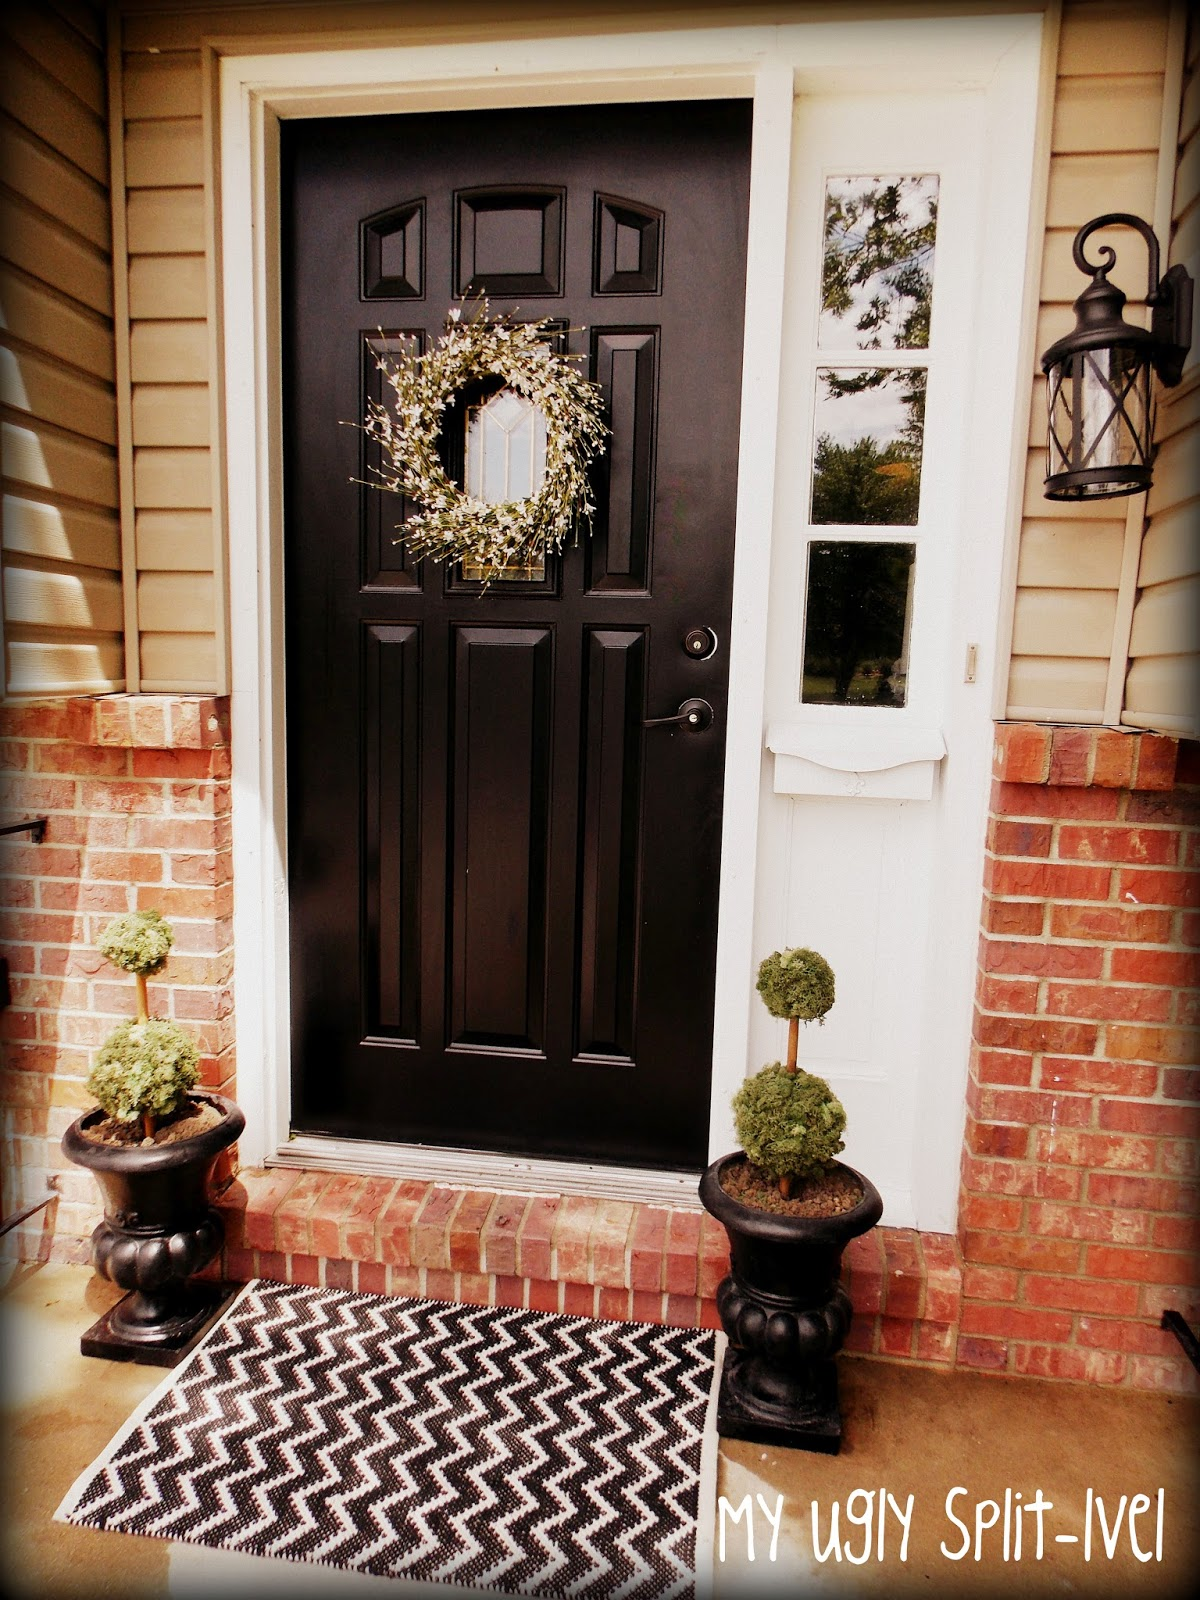 My Ugly Split Level Entryway: My Ugly Split-level: Inexpensive Curb Appeal